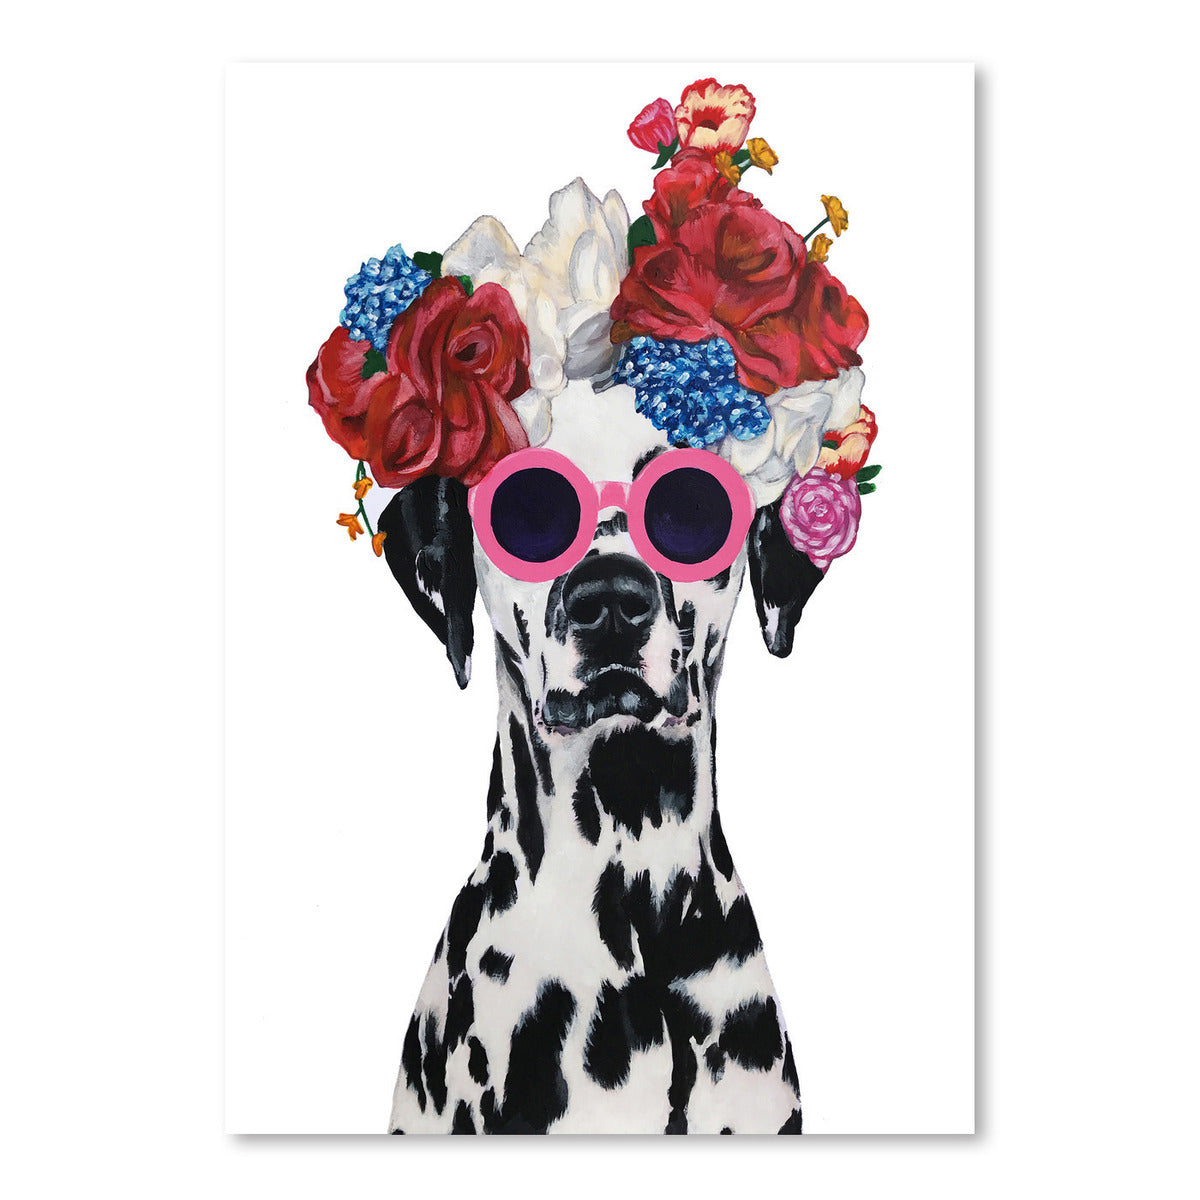 Dalmatian Flower Power White by Coco de Paris - Art Print - Americanflat